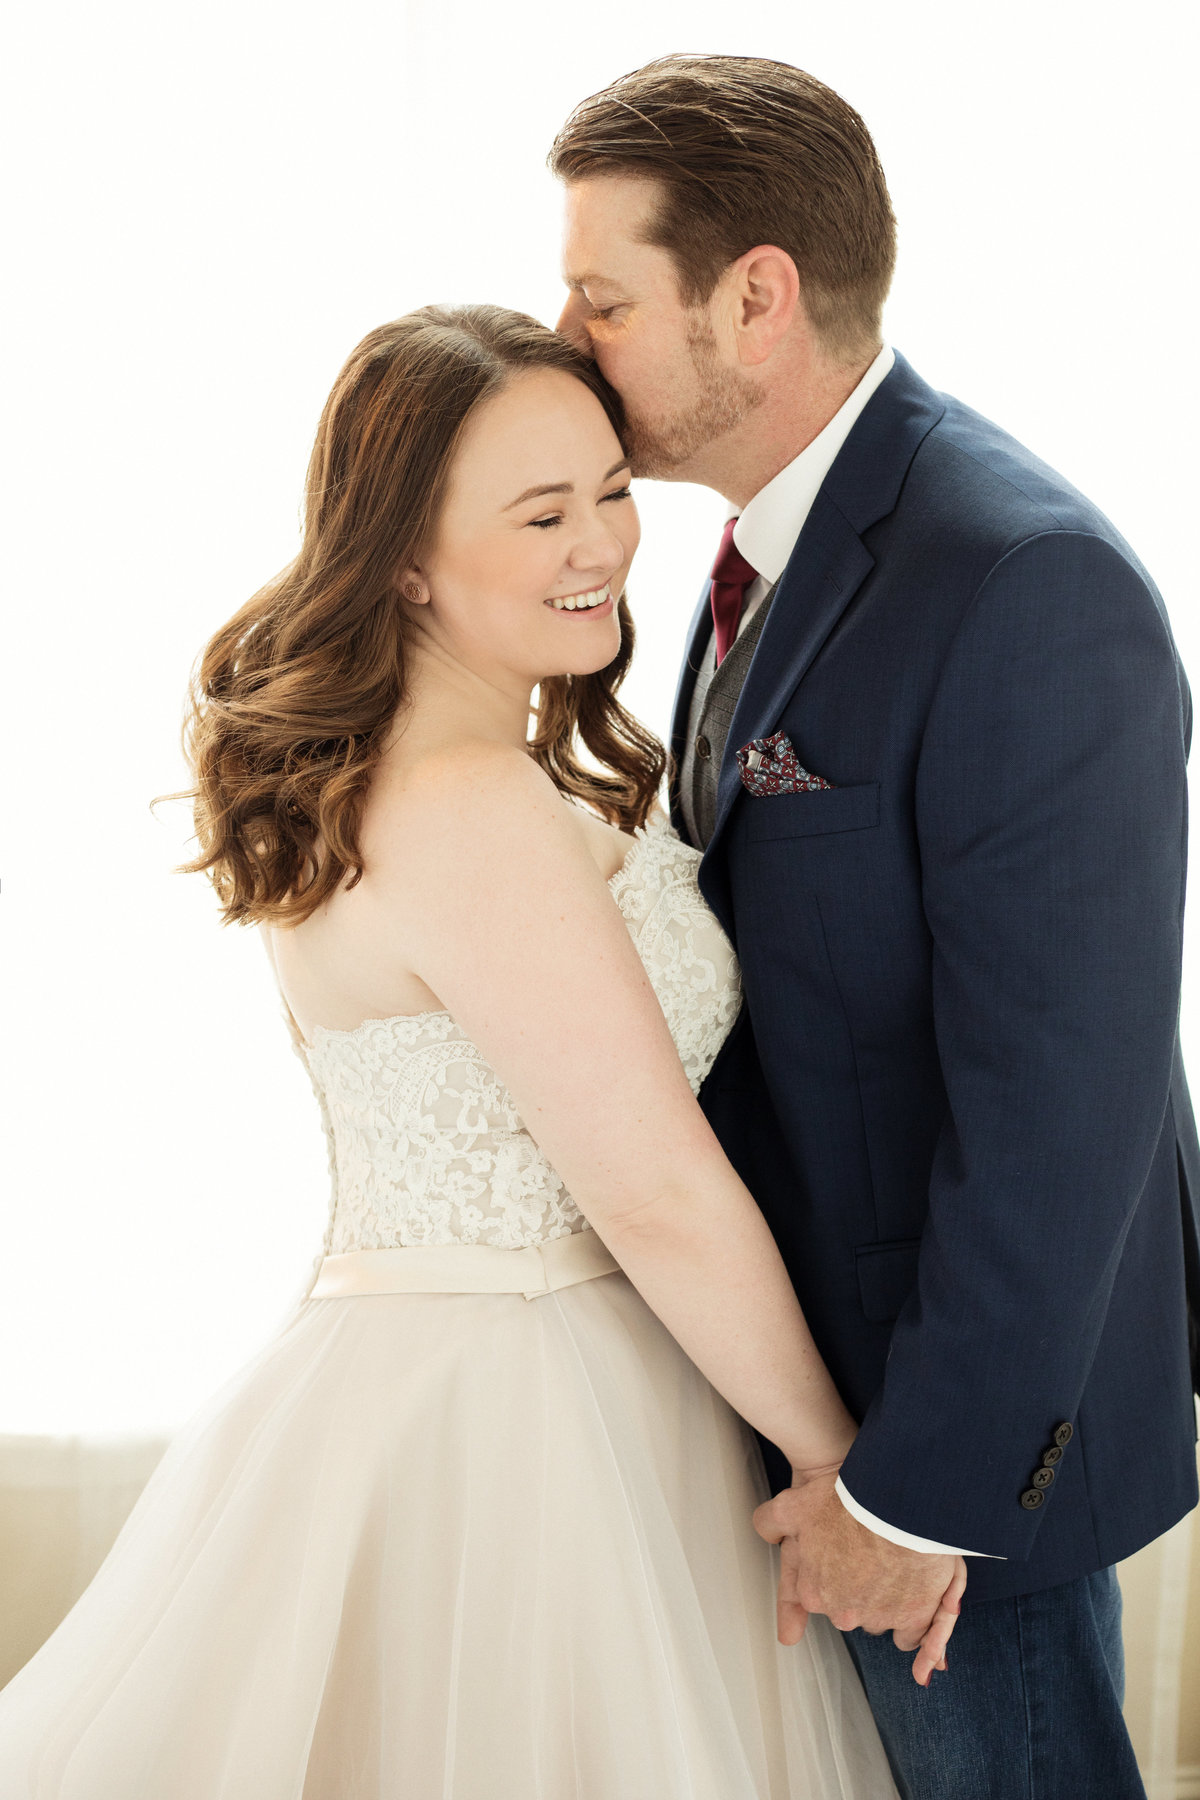 Felicia Reed Photography, Bridal, Couples Photoshoot, Wedding Dress, Pampering Day, Self Love Photoshoot, Ausitn, Tx_-16